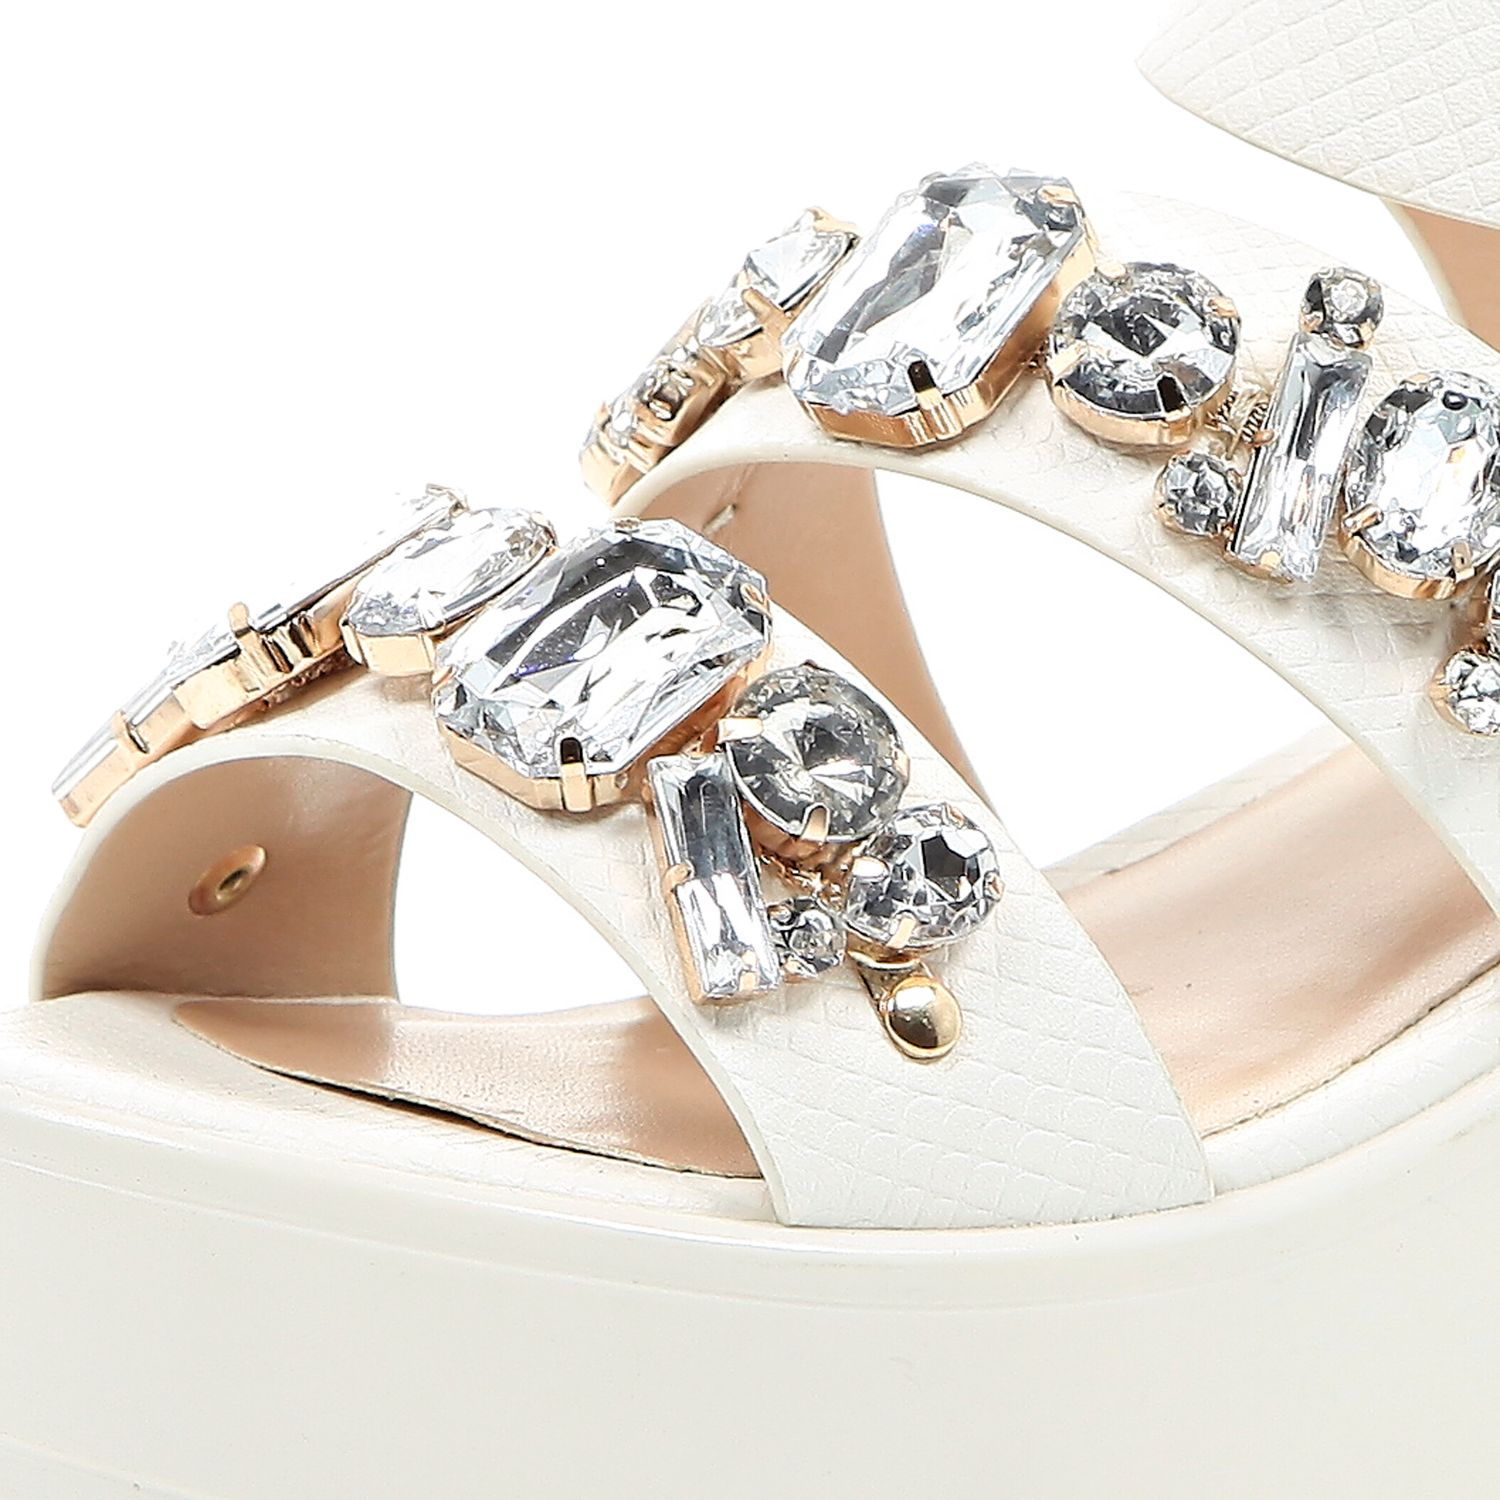 abc8f88cd86 River Island White Chunky Gem Embellished Sandals in White - Lyst